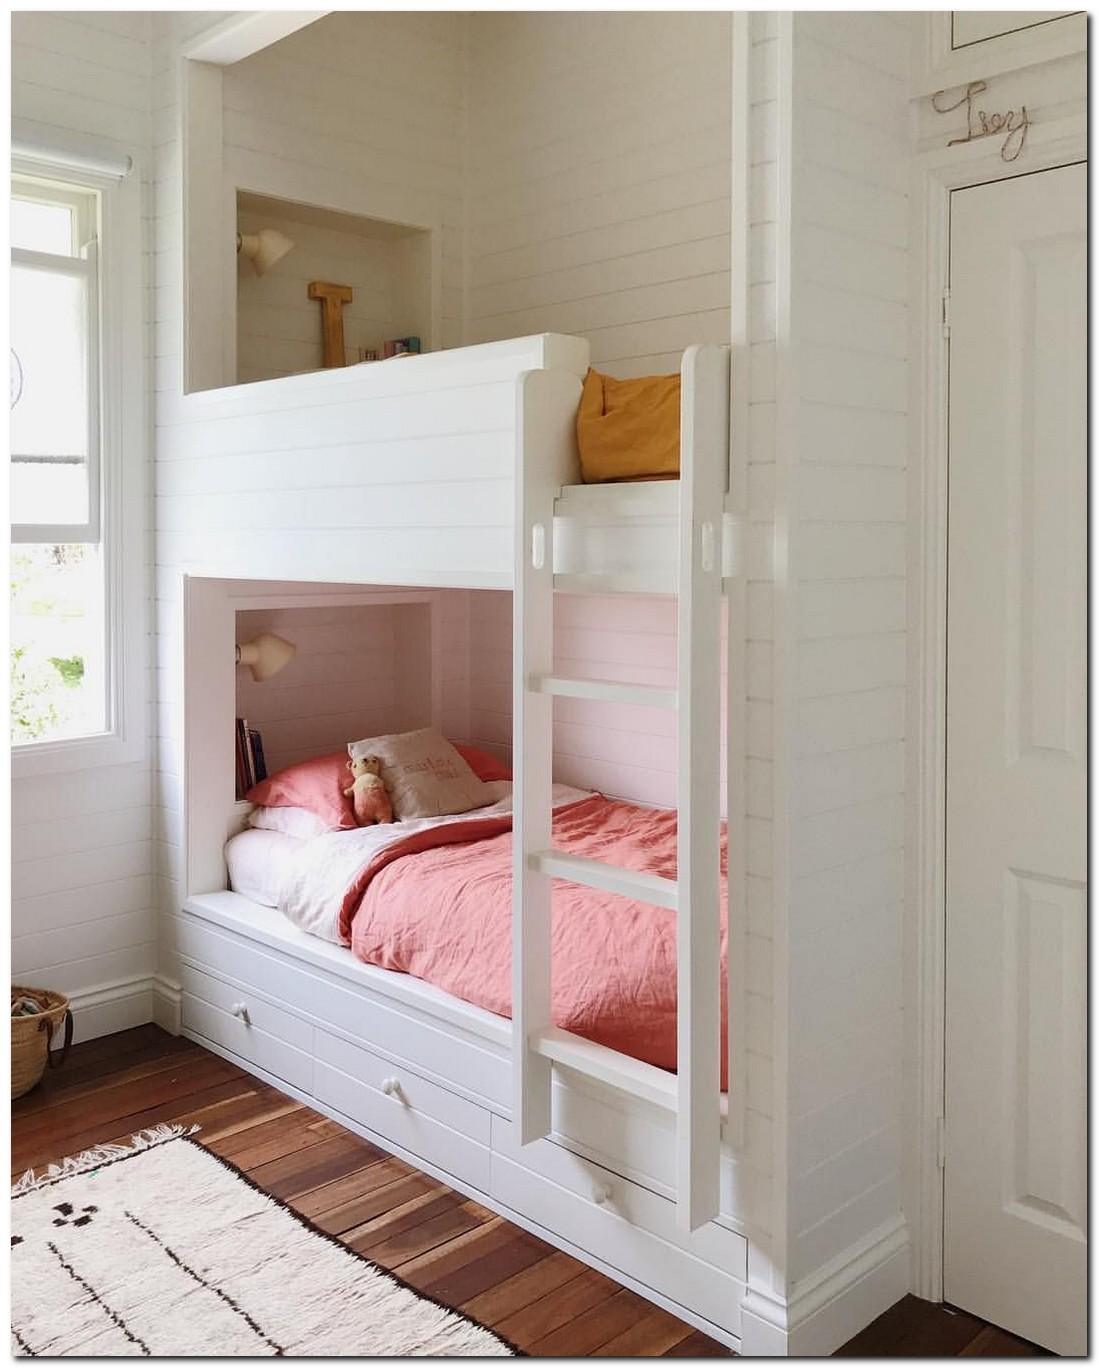 How to successfully choose bunk beds for kids 22